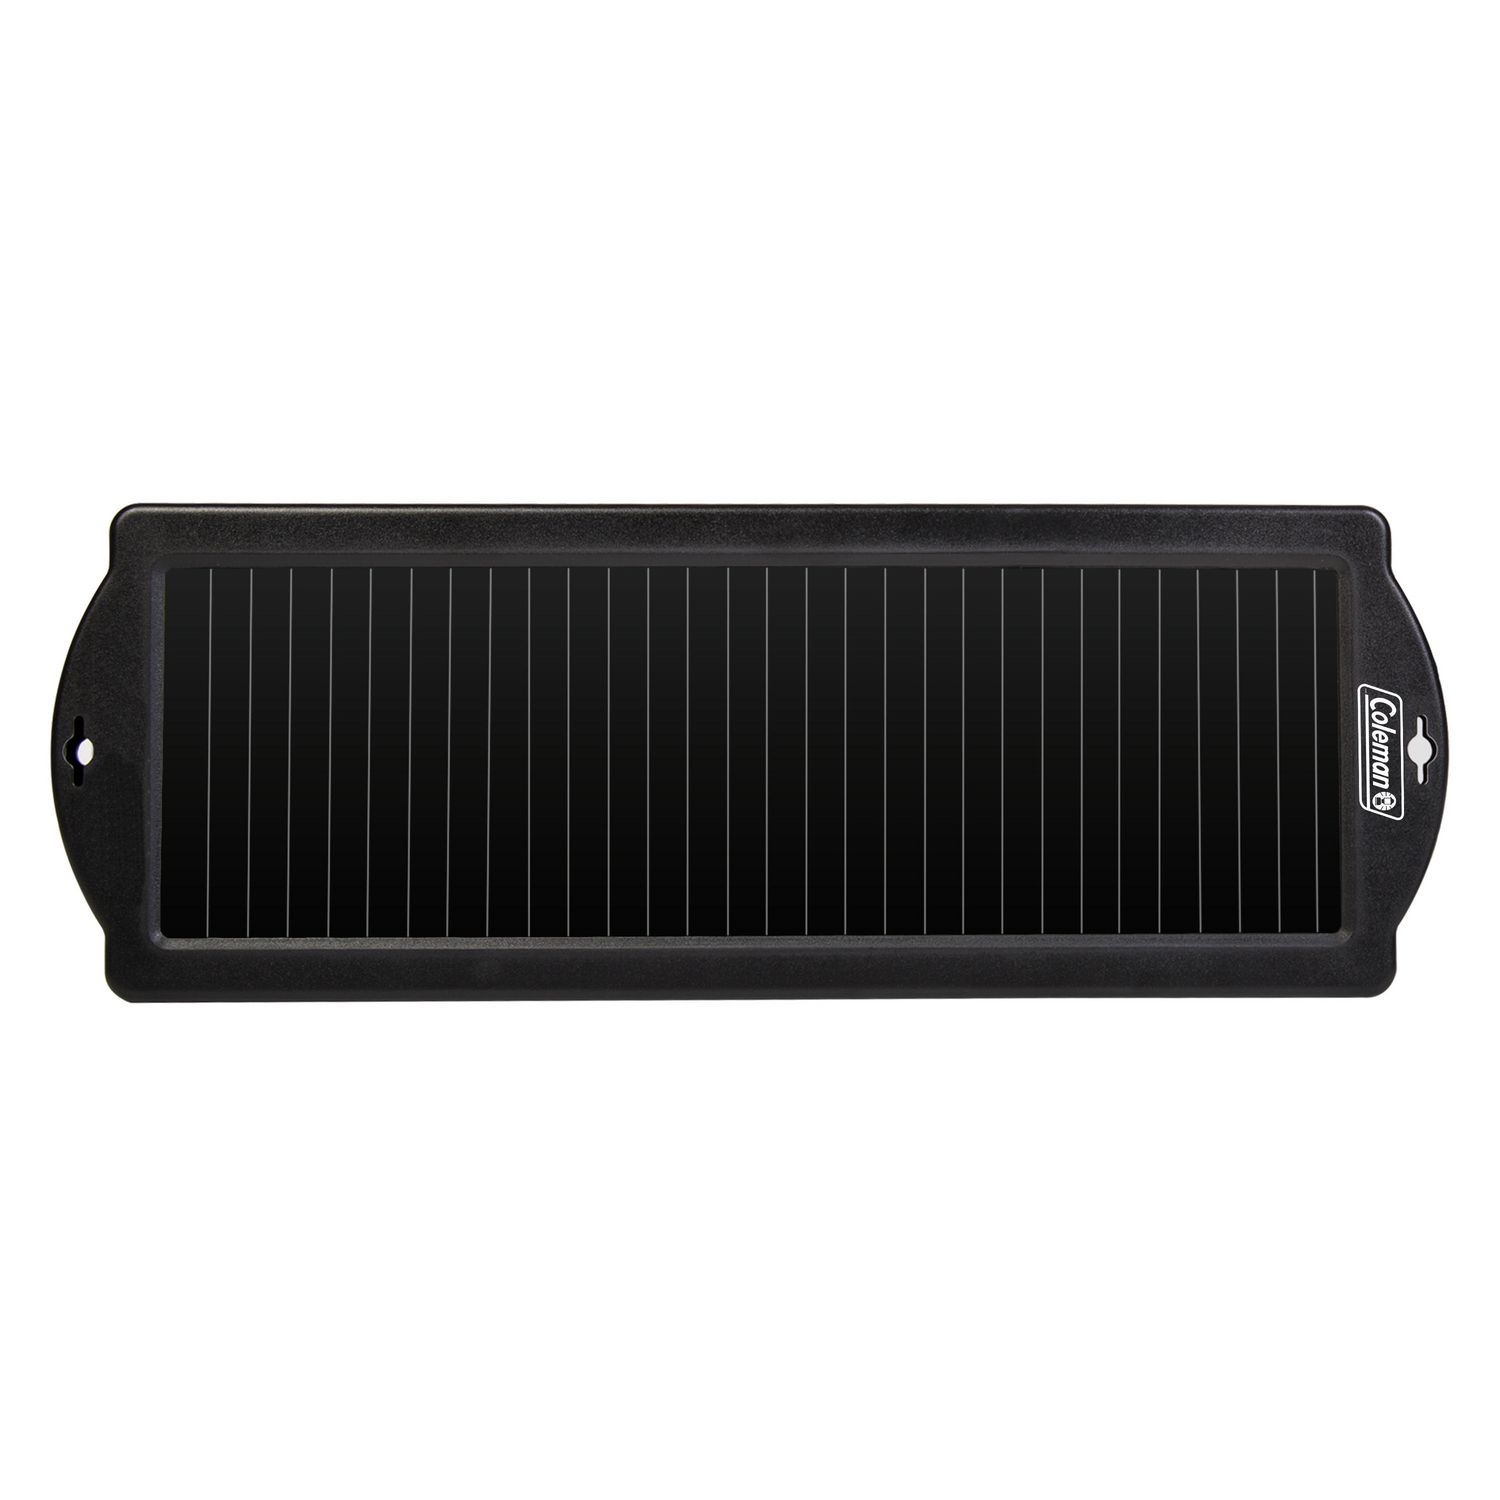 Secur Solar Charger